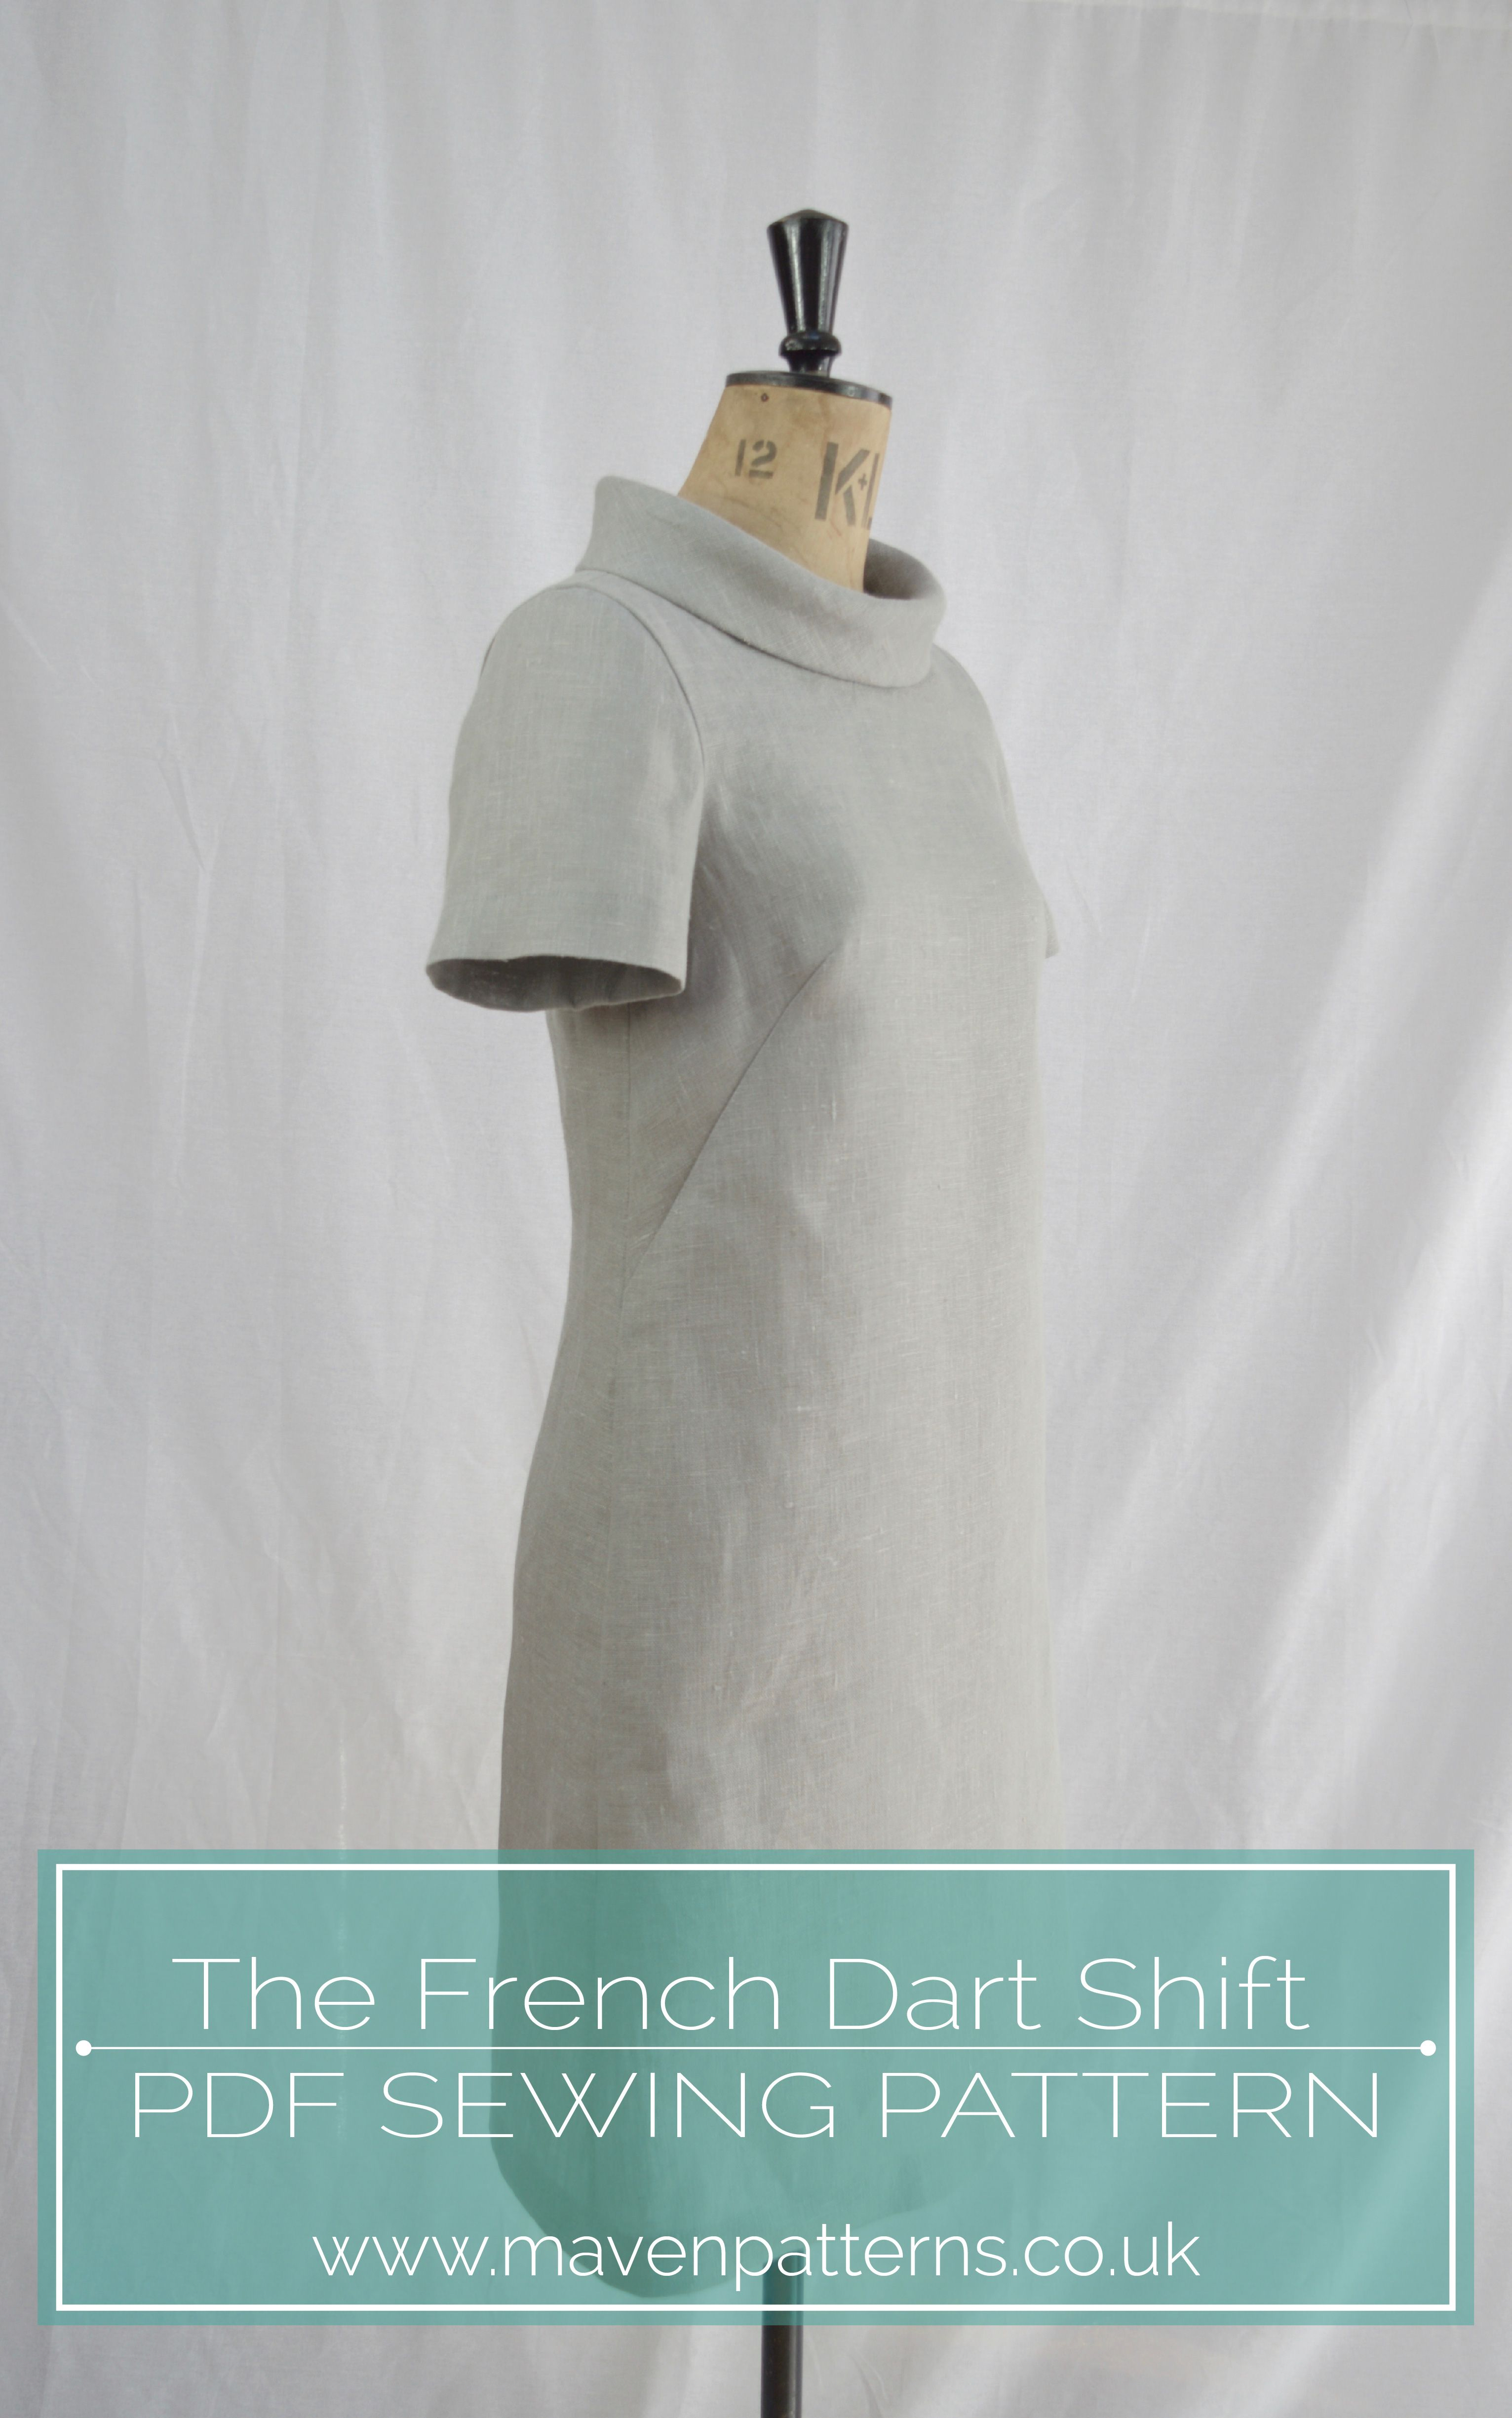 Easy Sewing Projects for Beginners | Diy Sewing: Fashion and Style ...